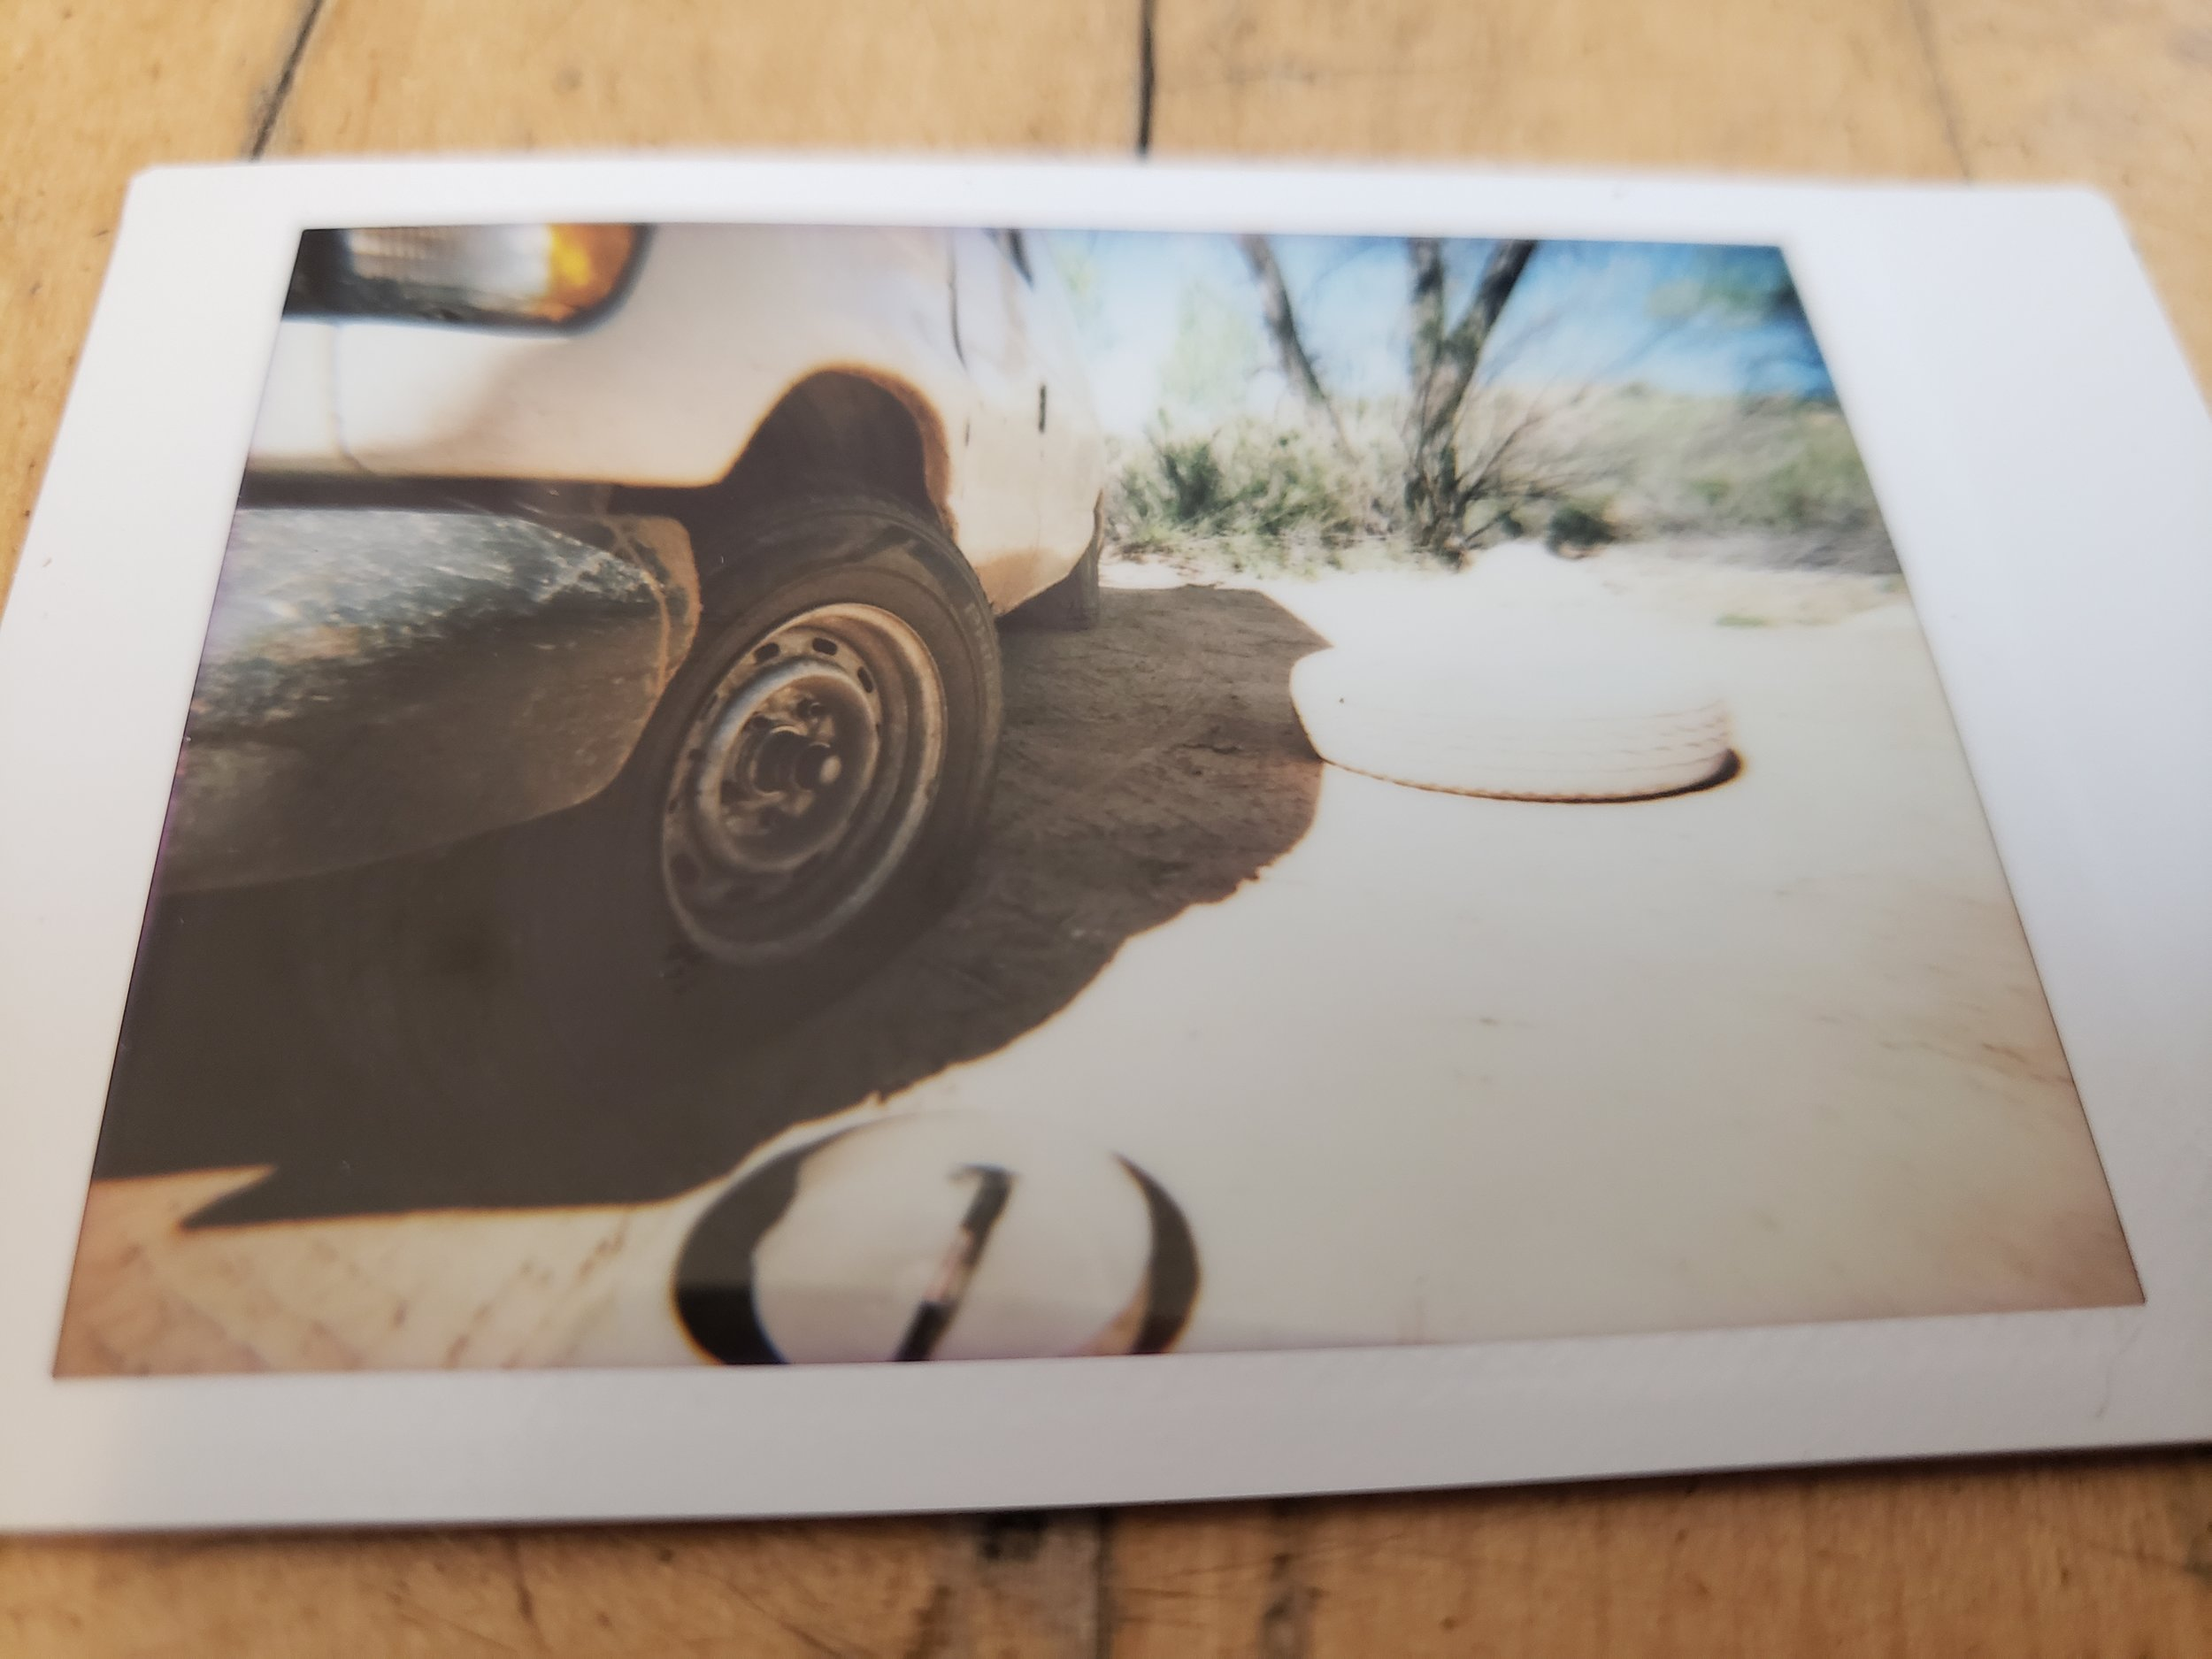 Utah 2019- Alyssa Johnson - Blind Spot Creatives - Photography - Zion National Park - Flat Tire - Poloroid